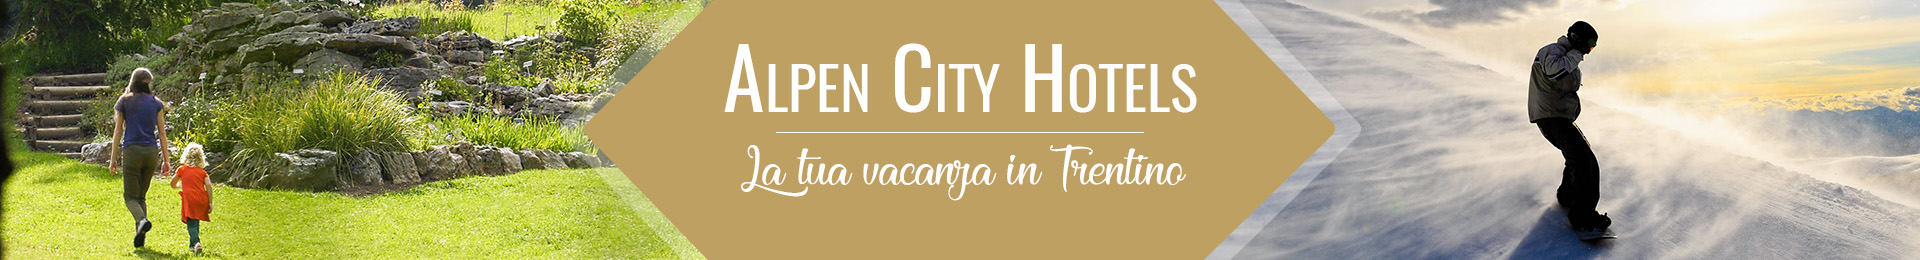 banner alpen city hotels estate inverno